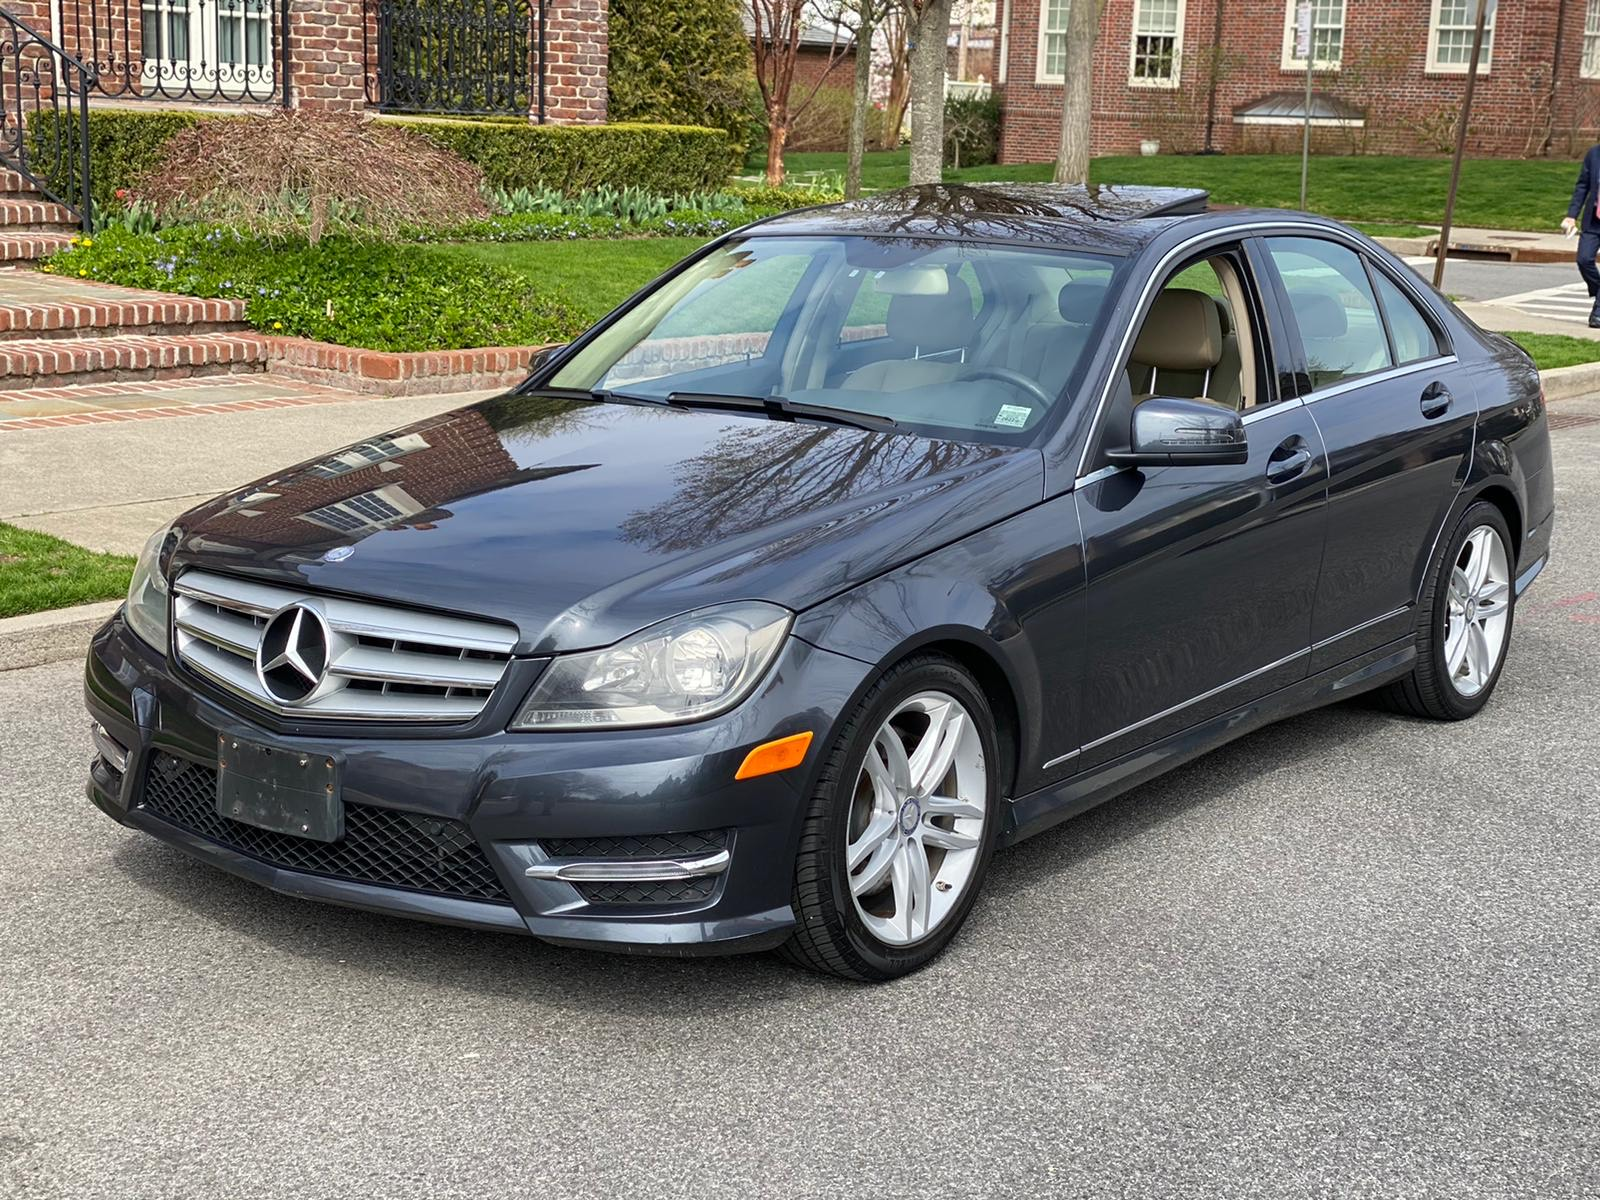 Used Car - 2013 Mercedes-Benz C 300 Luxury 4MATIC AWD for Sale in Staten Island, NY